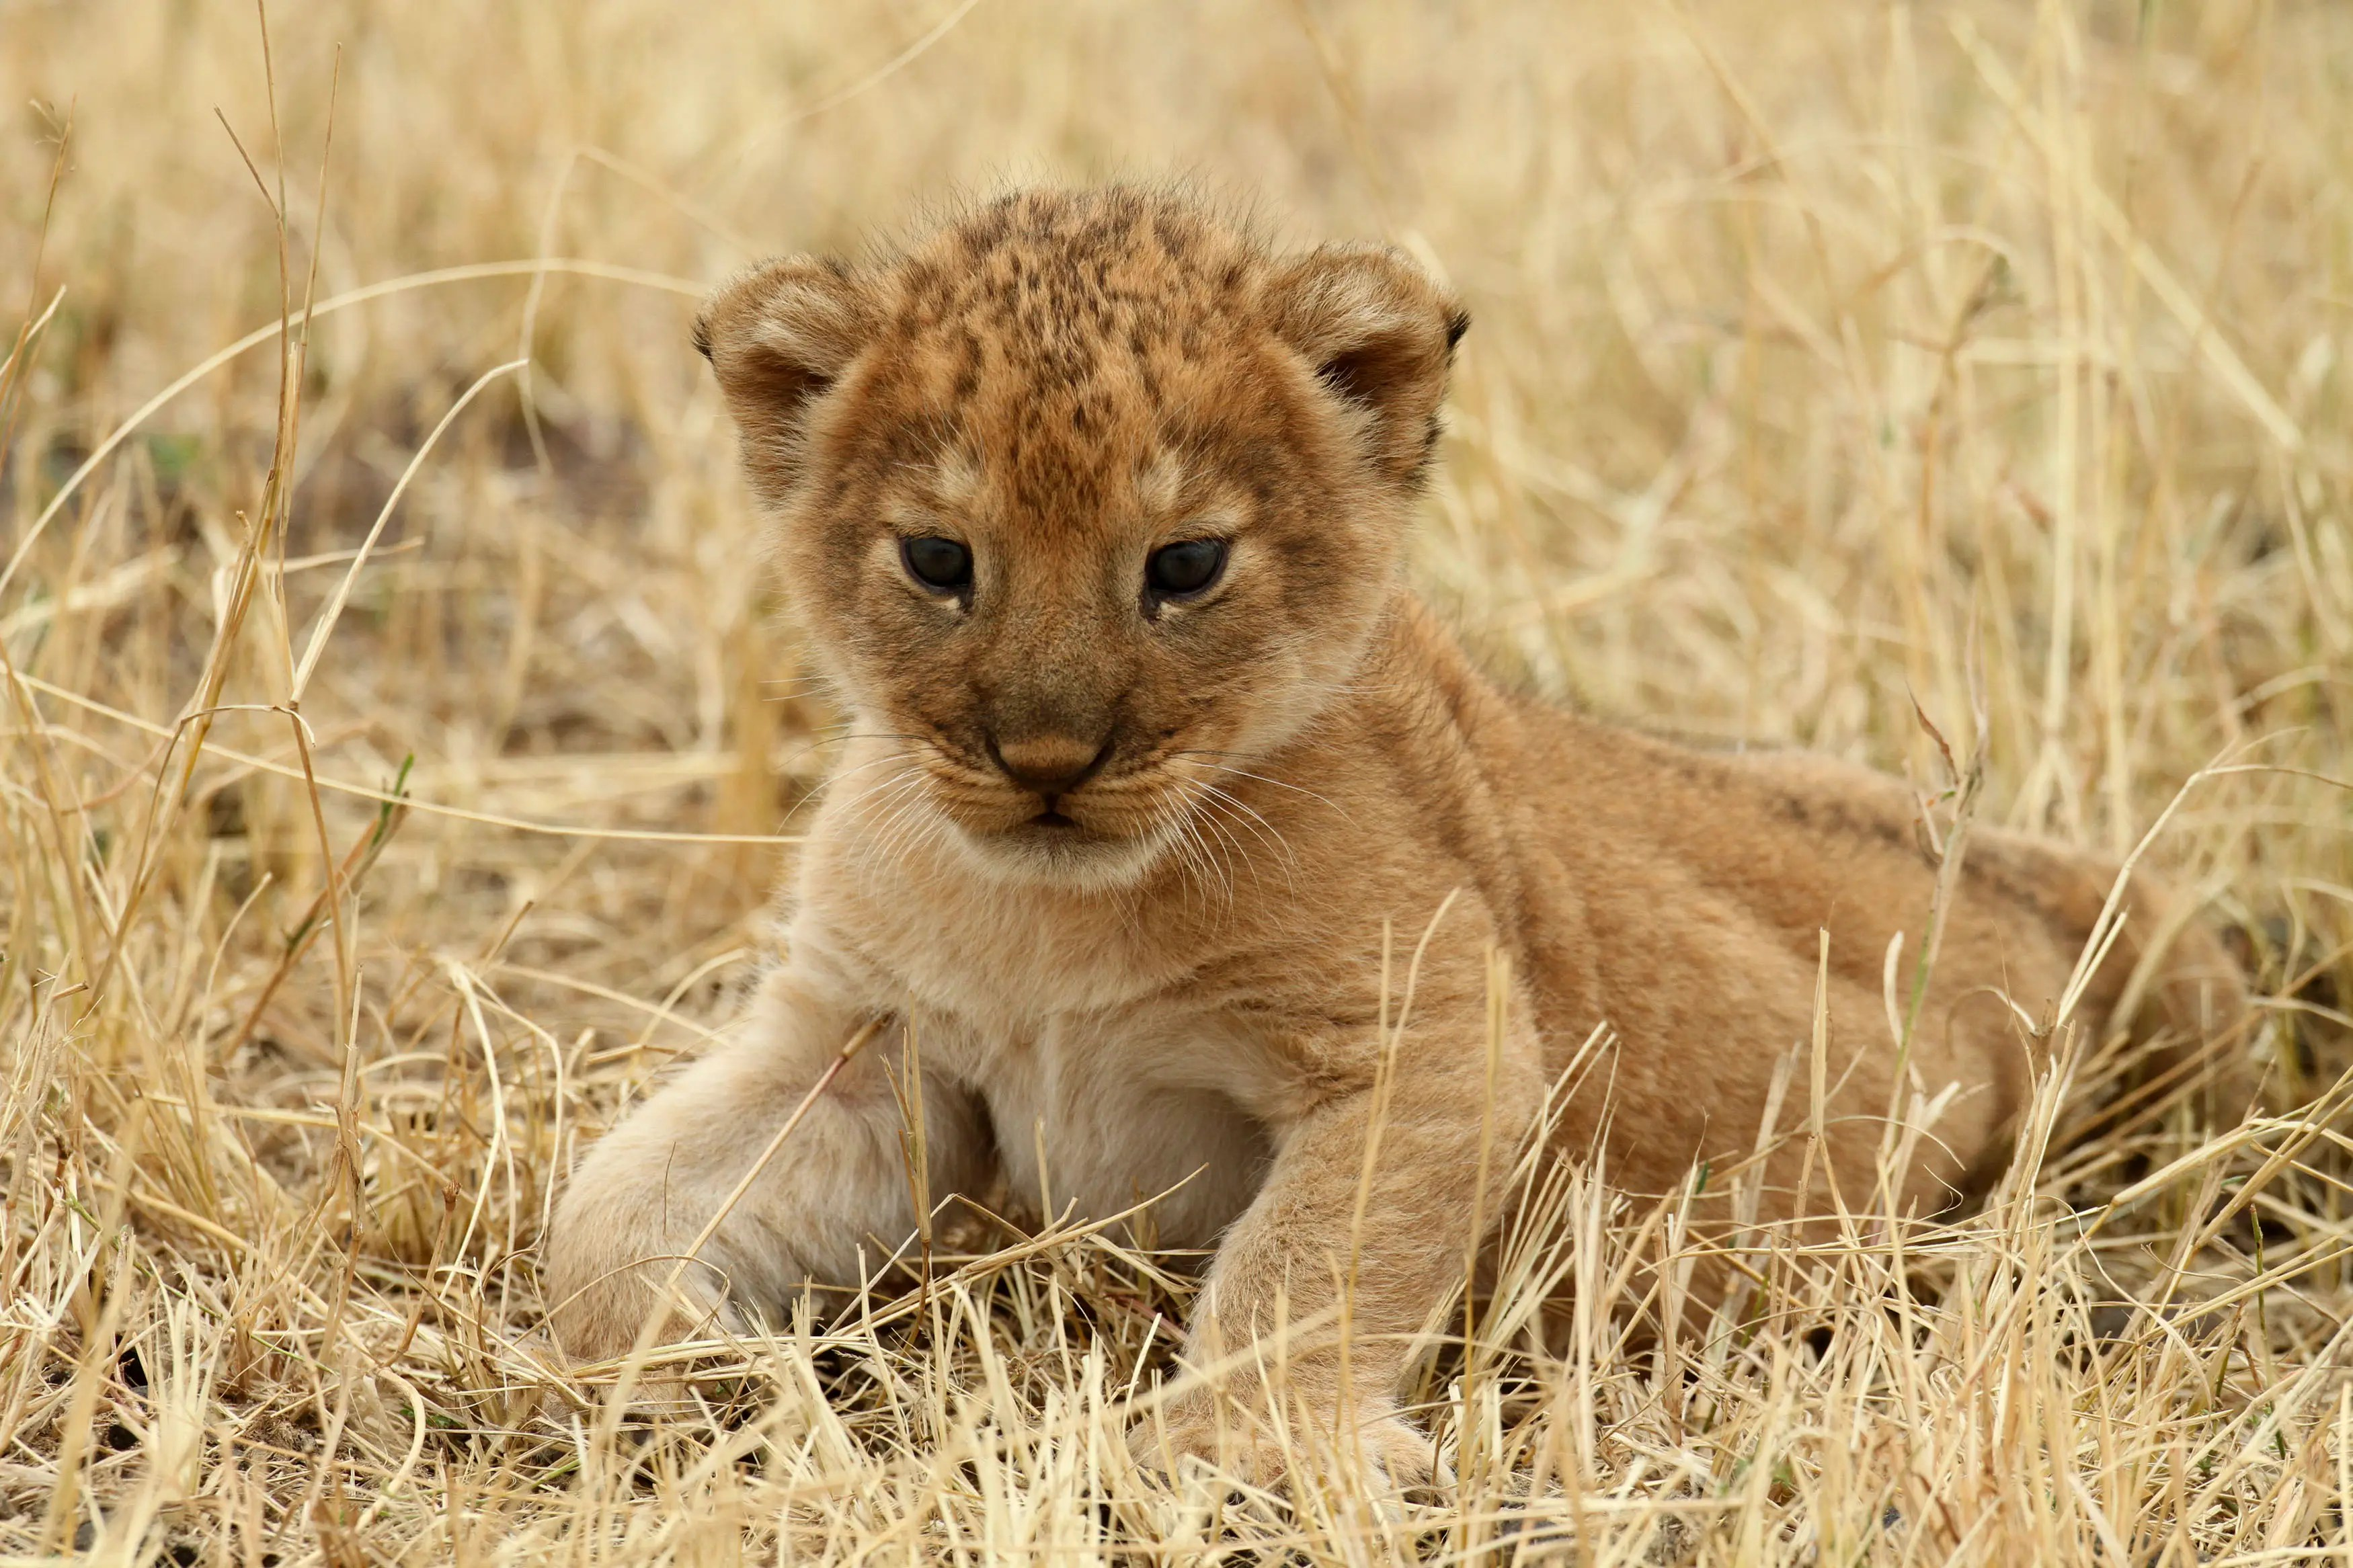 A lion cub rests at Tanzania's Serengeti National Park.